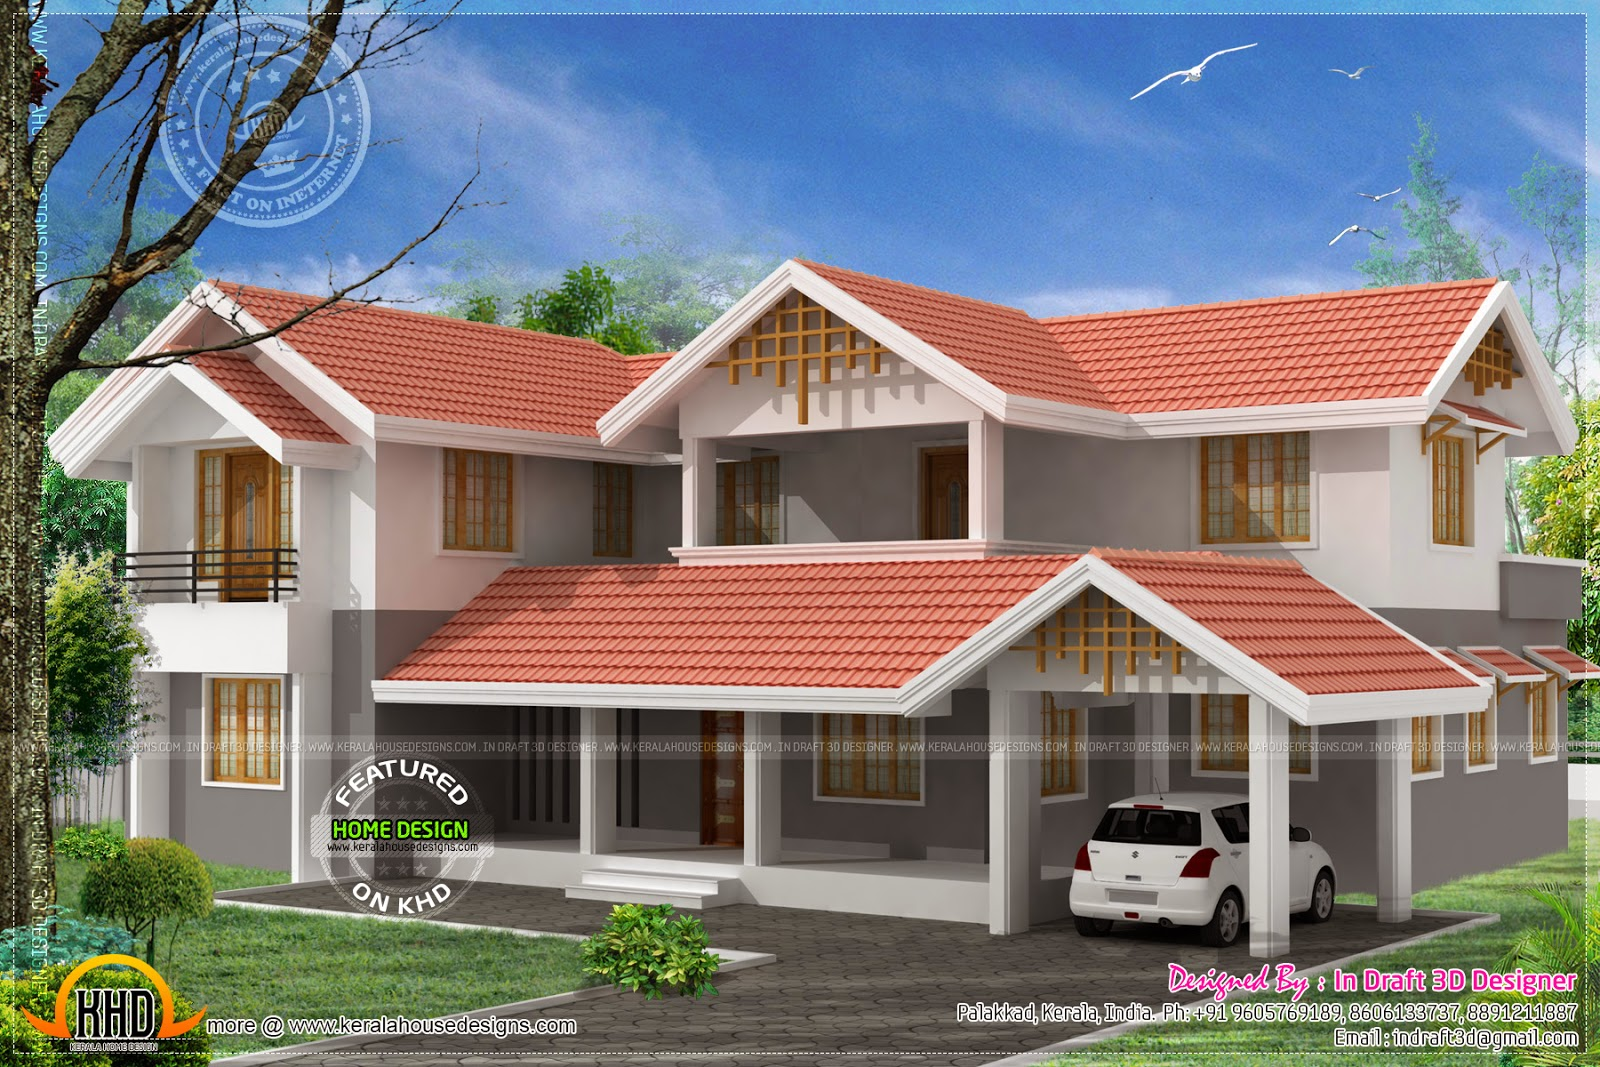 3d home design in 2860 sq feet kerala home design and for In home designer